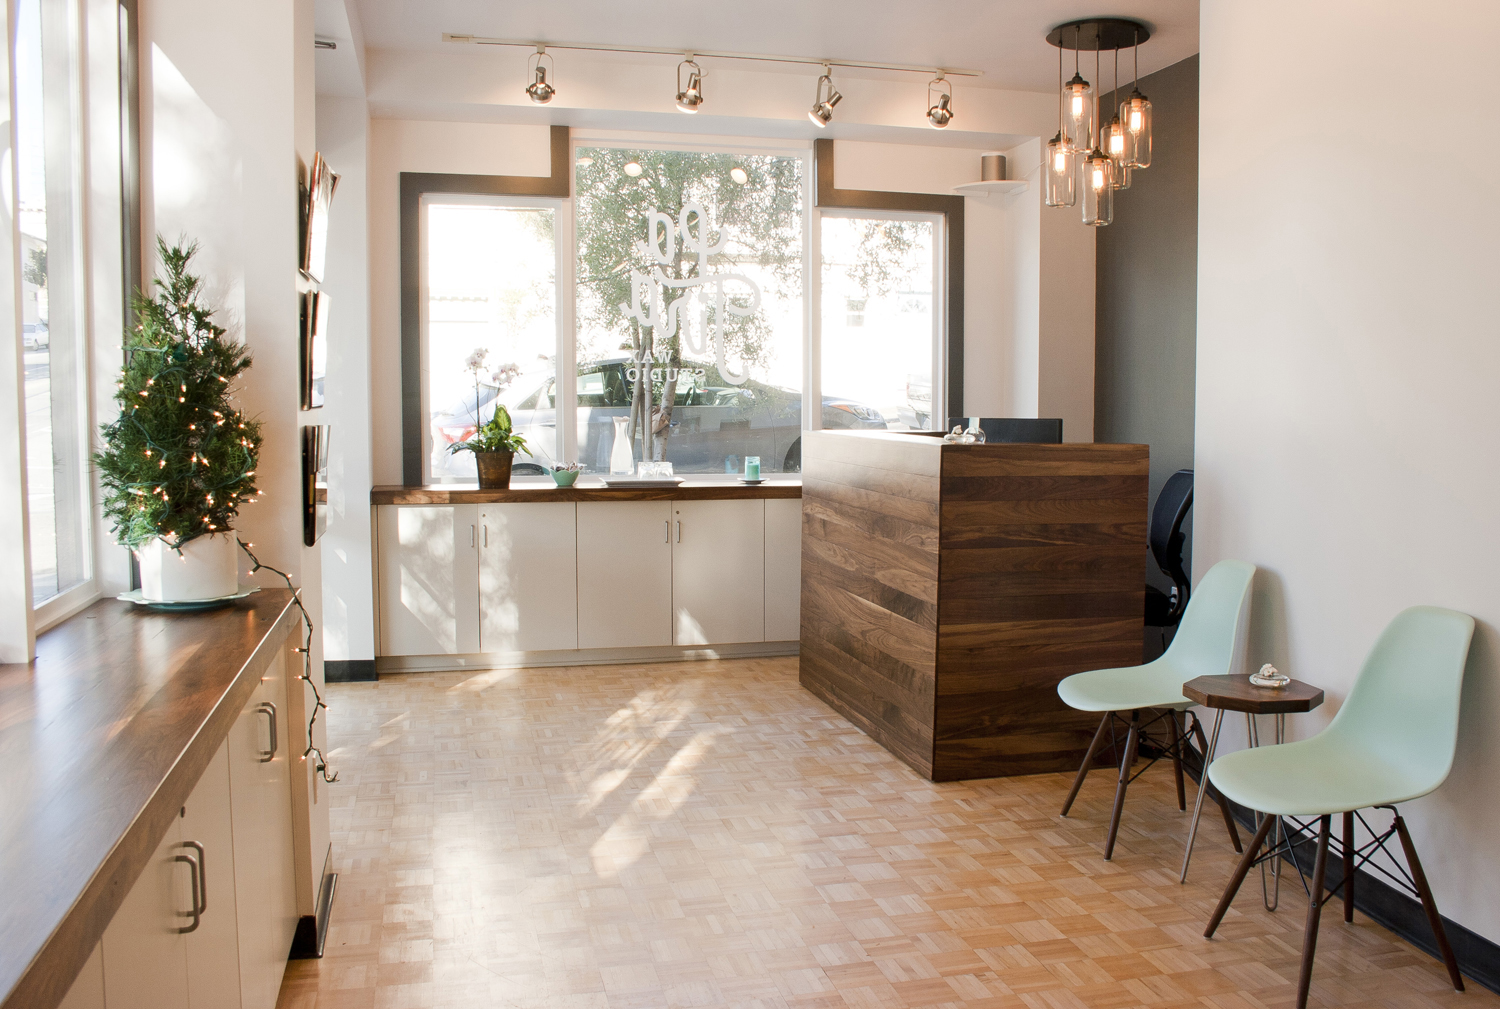 This Is The Beautifully Designed Interior Of La Tira Wax Studio In San  Francisco. Christine, The Owner, Came To Me With An Incredible Vision For  How She ...